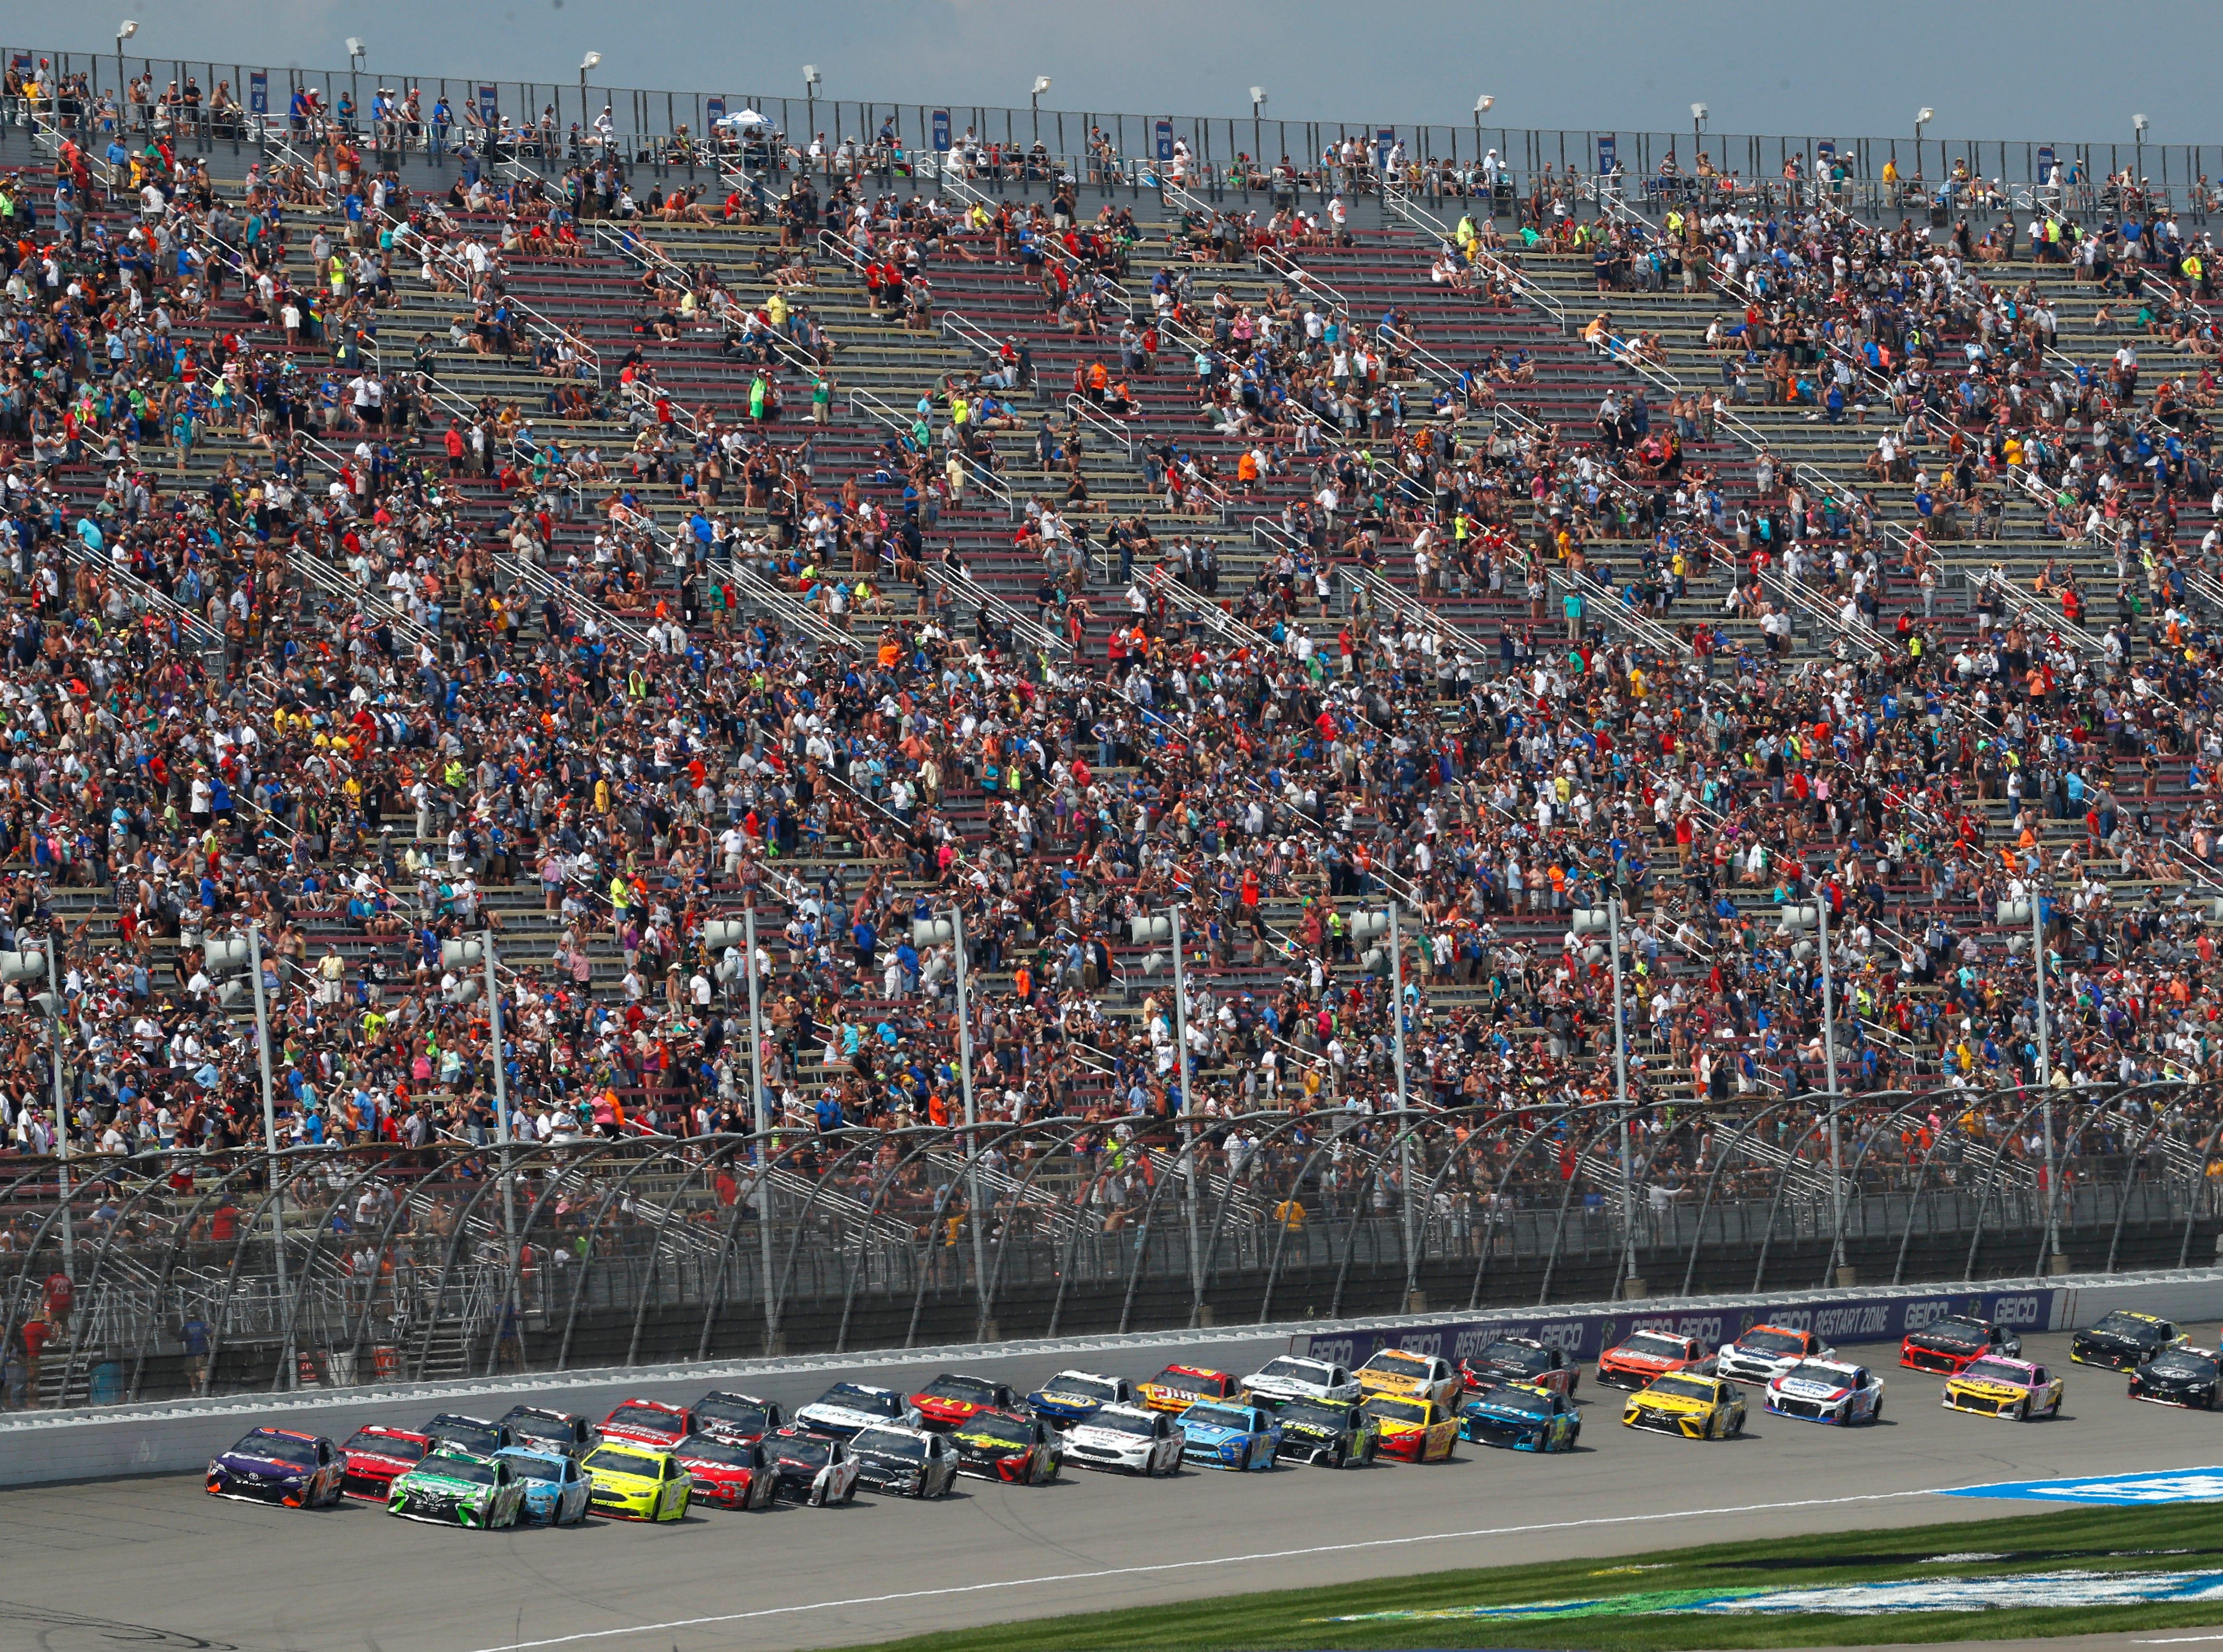 Pole sitter Denny Hamlin leads the field to the start line during a NASCAR Cup Series auto race at Michigan International Speedway in Brooklyn, Mich., Sunday, Aug. 12, 2018. (AP Photo/Paul Sancya)